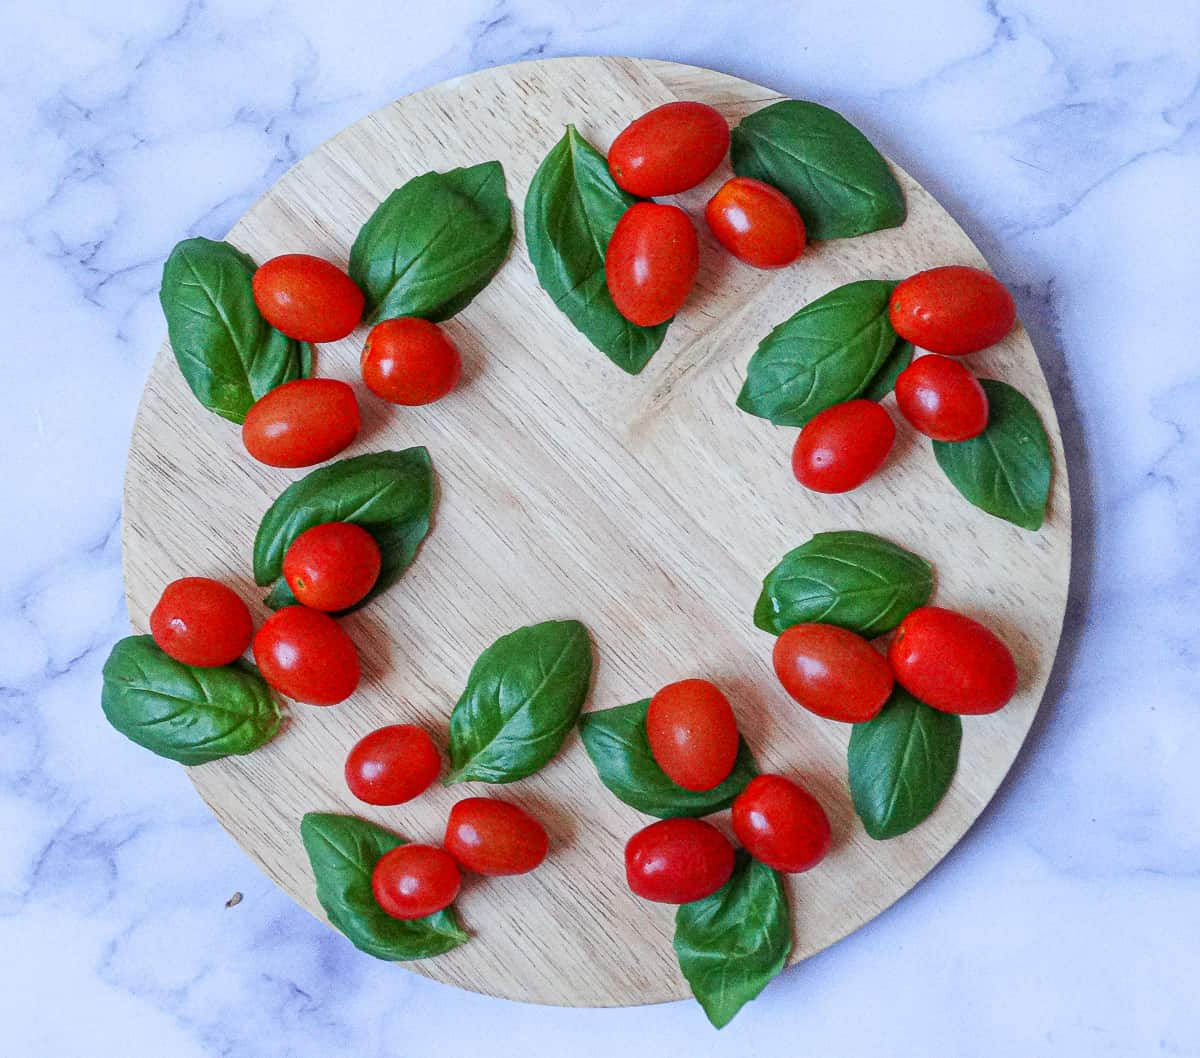 basil leaves and grape tomatoes spread out on a round wooden board